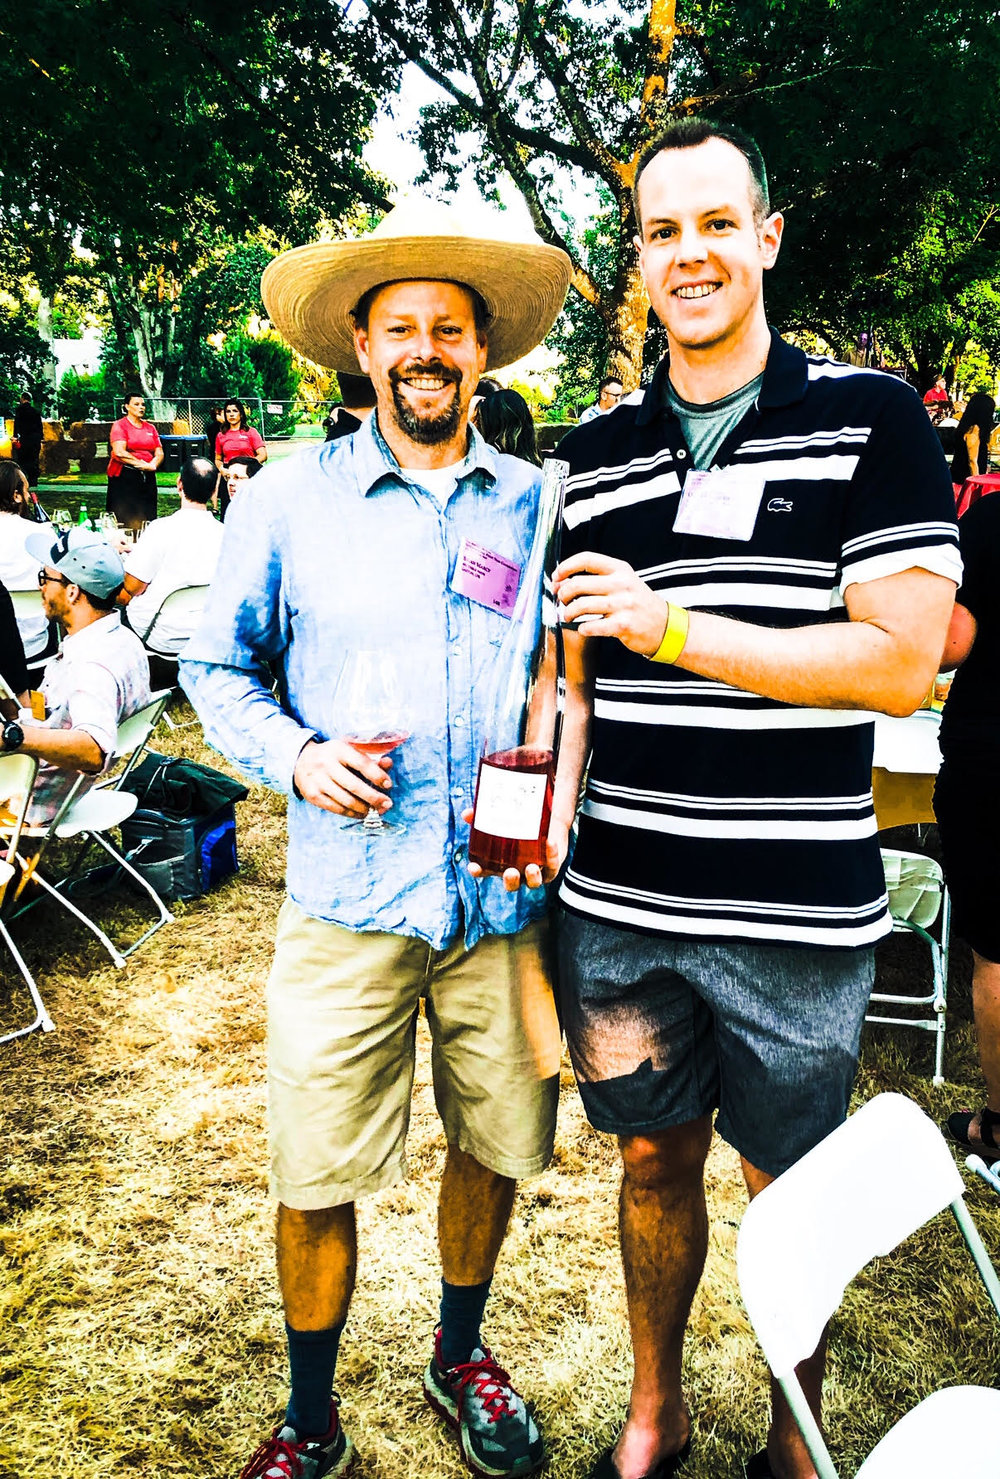 Here I am pictured with Big Table Farm winemaker, Brian Marcy. Brian crafts some of the best Rose in North America.